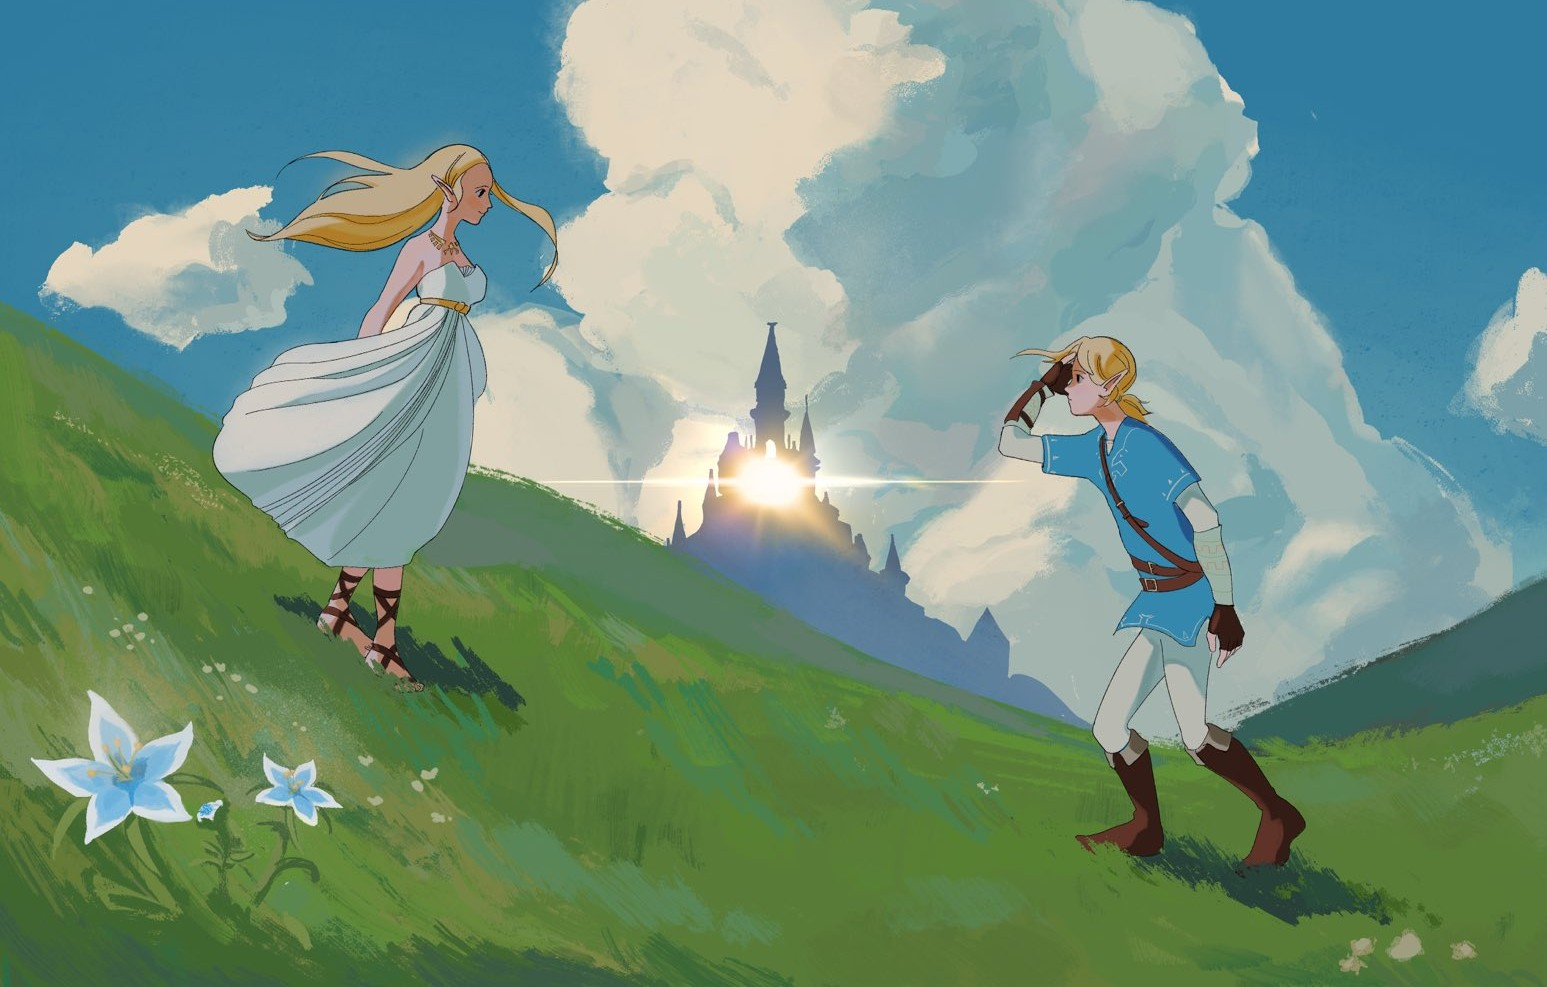 Ghibli meets Zelda: Breath of the Wild once again in this stunning poster screenshot